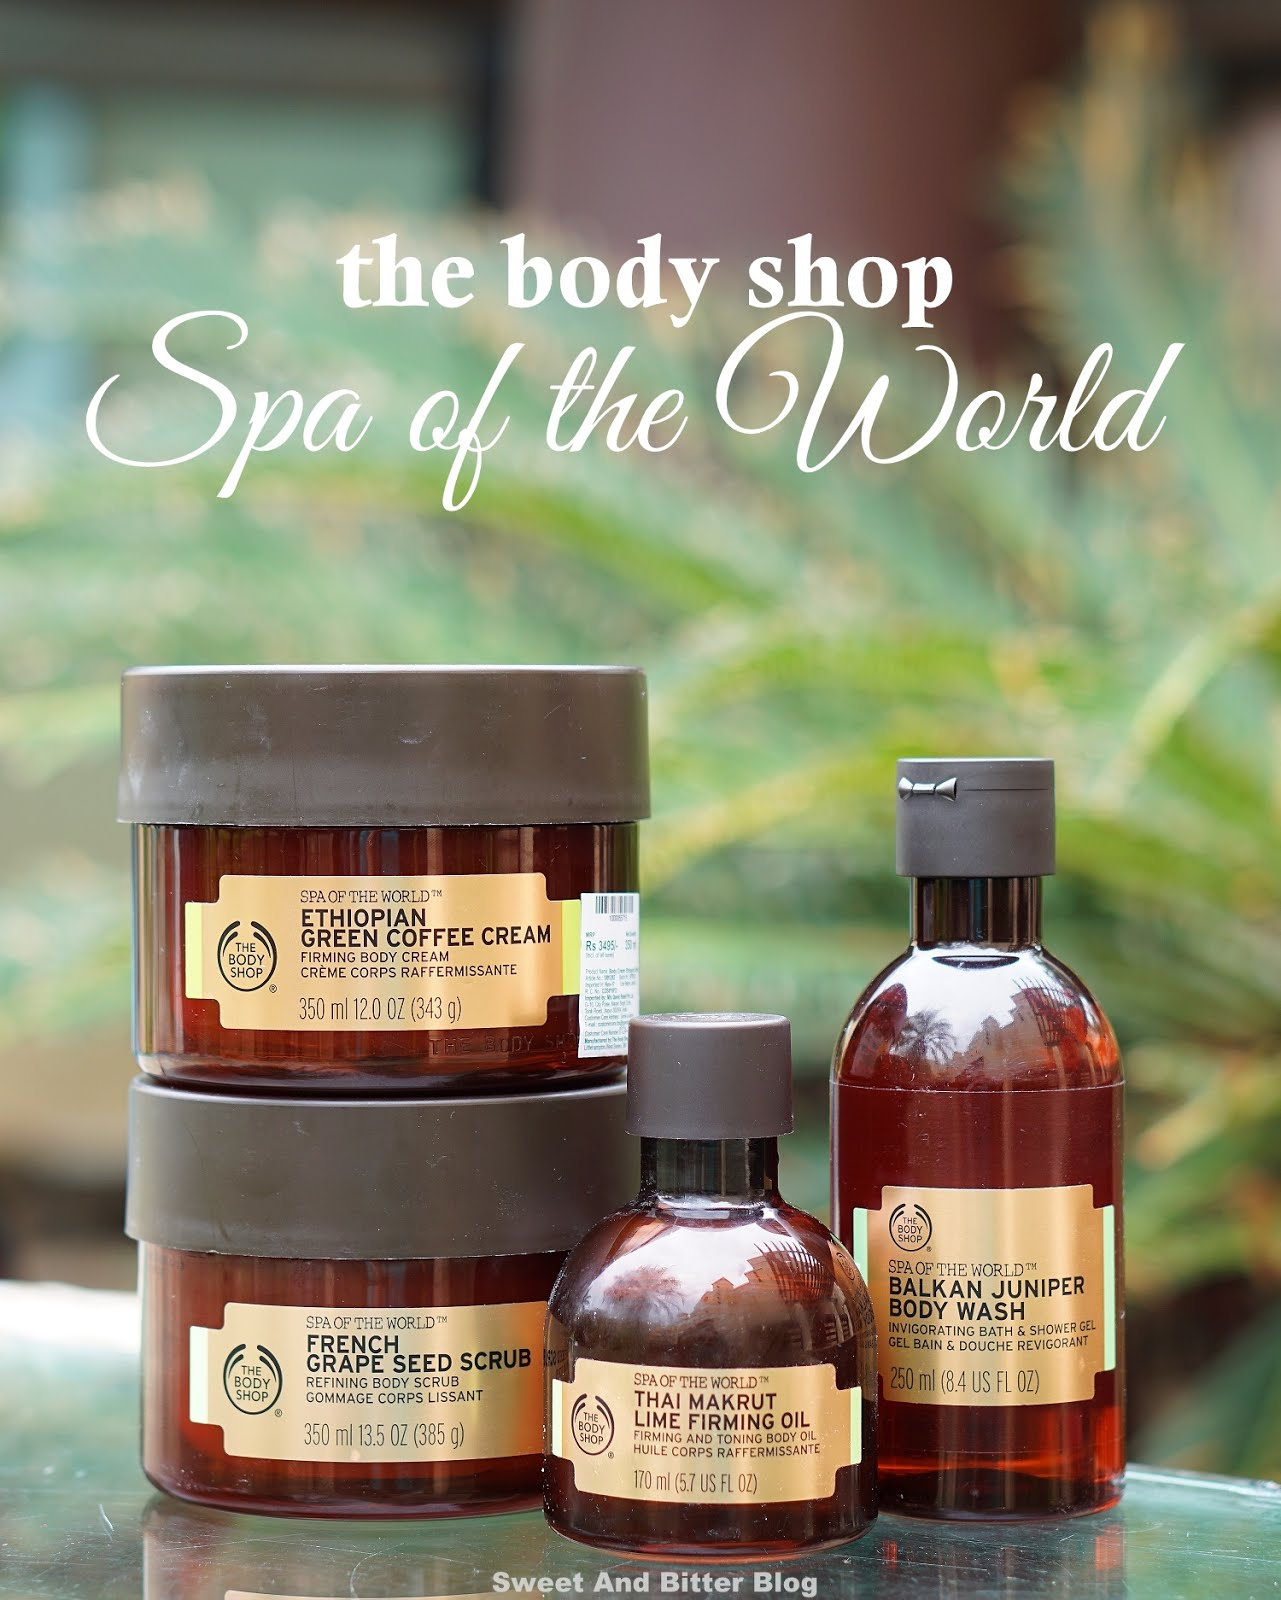 The Body Shop Spa of the World French Grape Seed Scrub, Ethiopian Green Coffee Cream, Thai Makrut Lime Firming Oil, Balkan Juniper Body Wash Review India